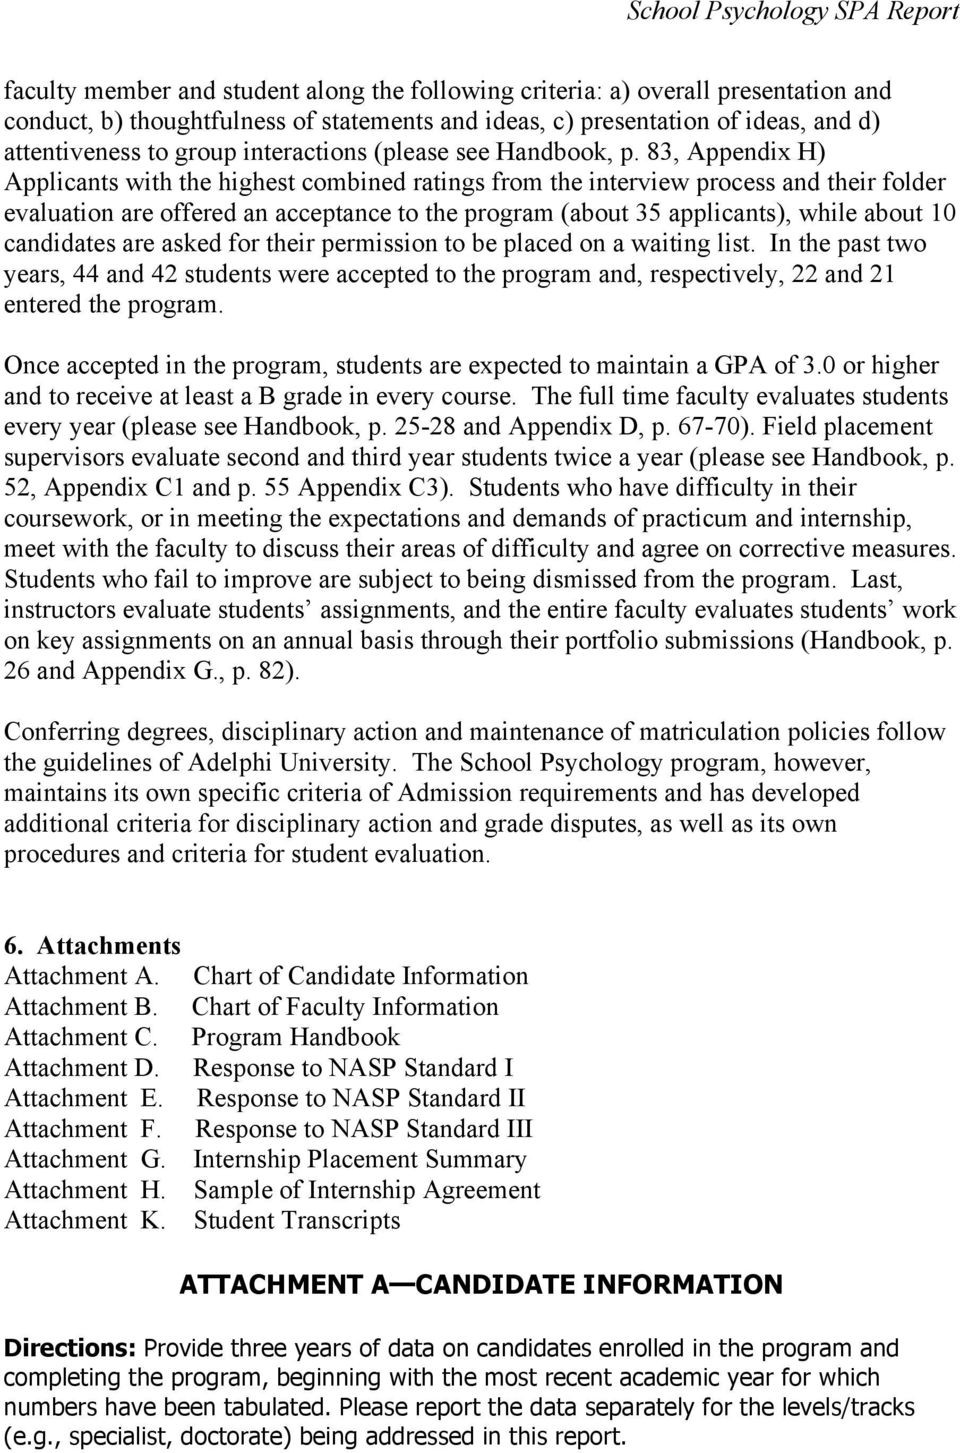 83, Appendix H) Applicants with the highest combined ratings from the interview process and their folder evaluation are offered an acceptance to the program (about 35 applicants), while about 10